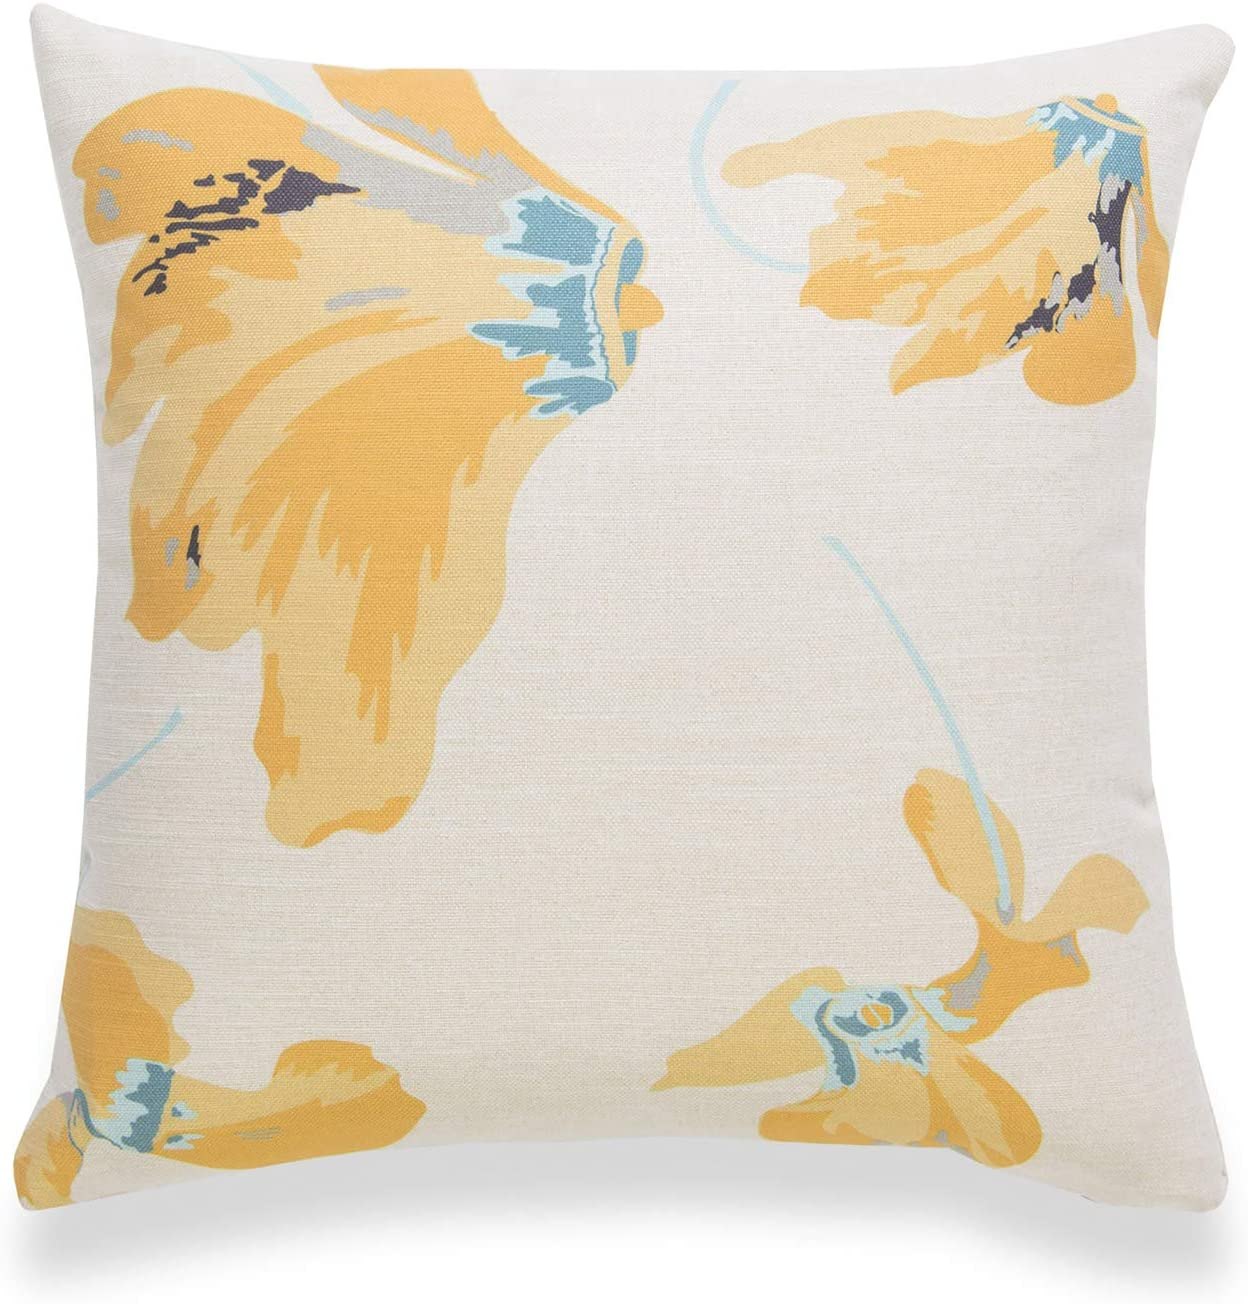 Hofdeco Spring Decorative Throw Pillow Cover ONLY, for Couch, Sofa, Bed, Yellow Floral, 18x18